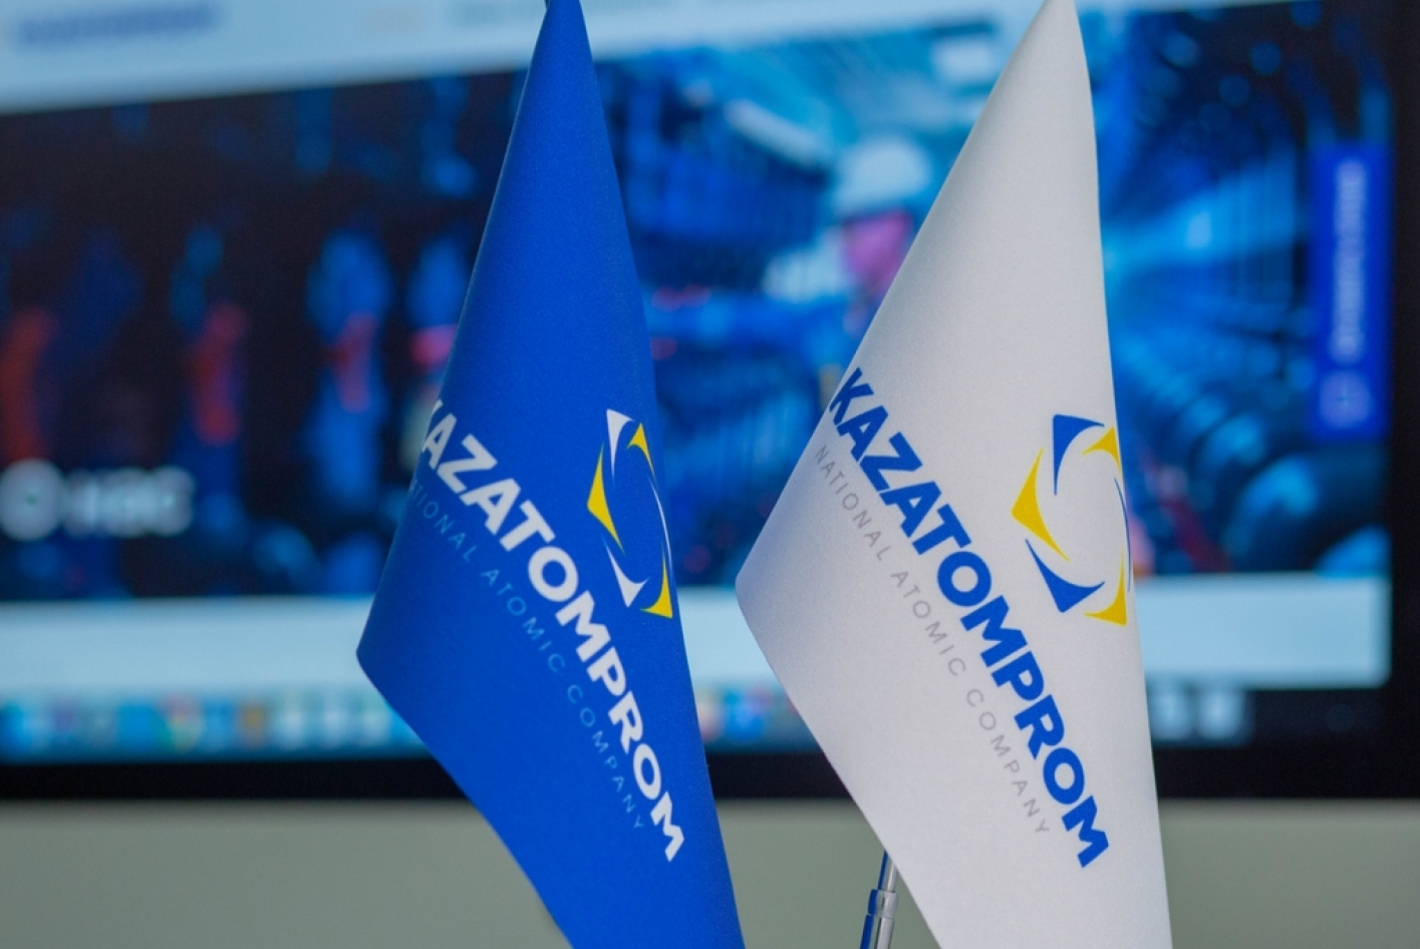 Kazatomprom 2Q19 Operations and Trading Update